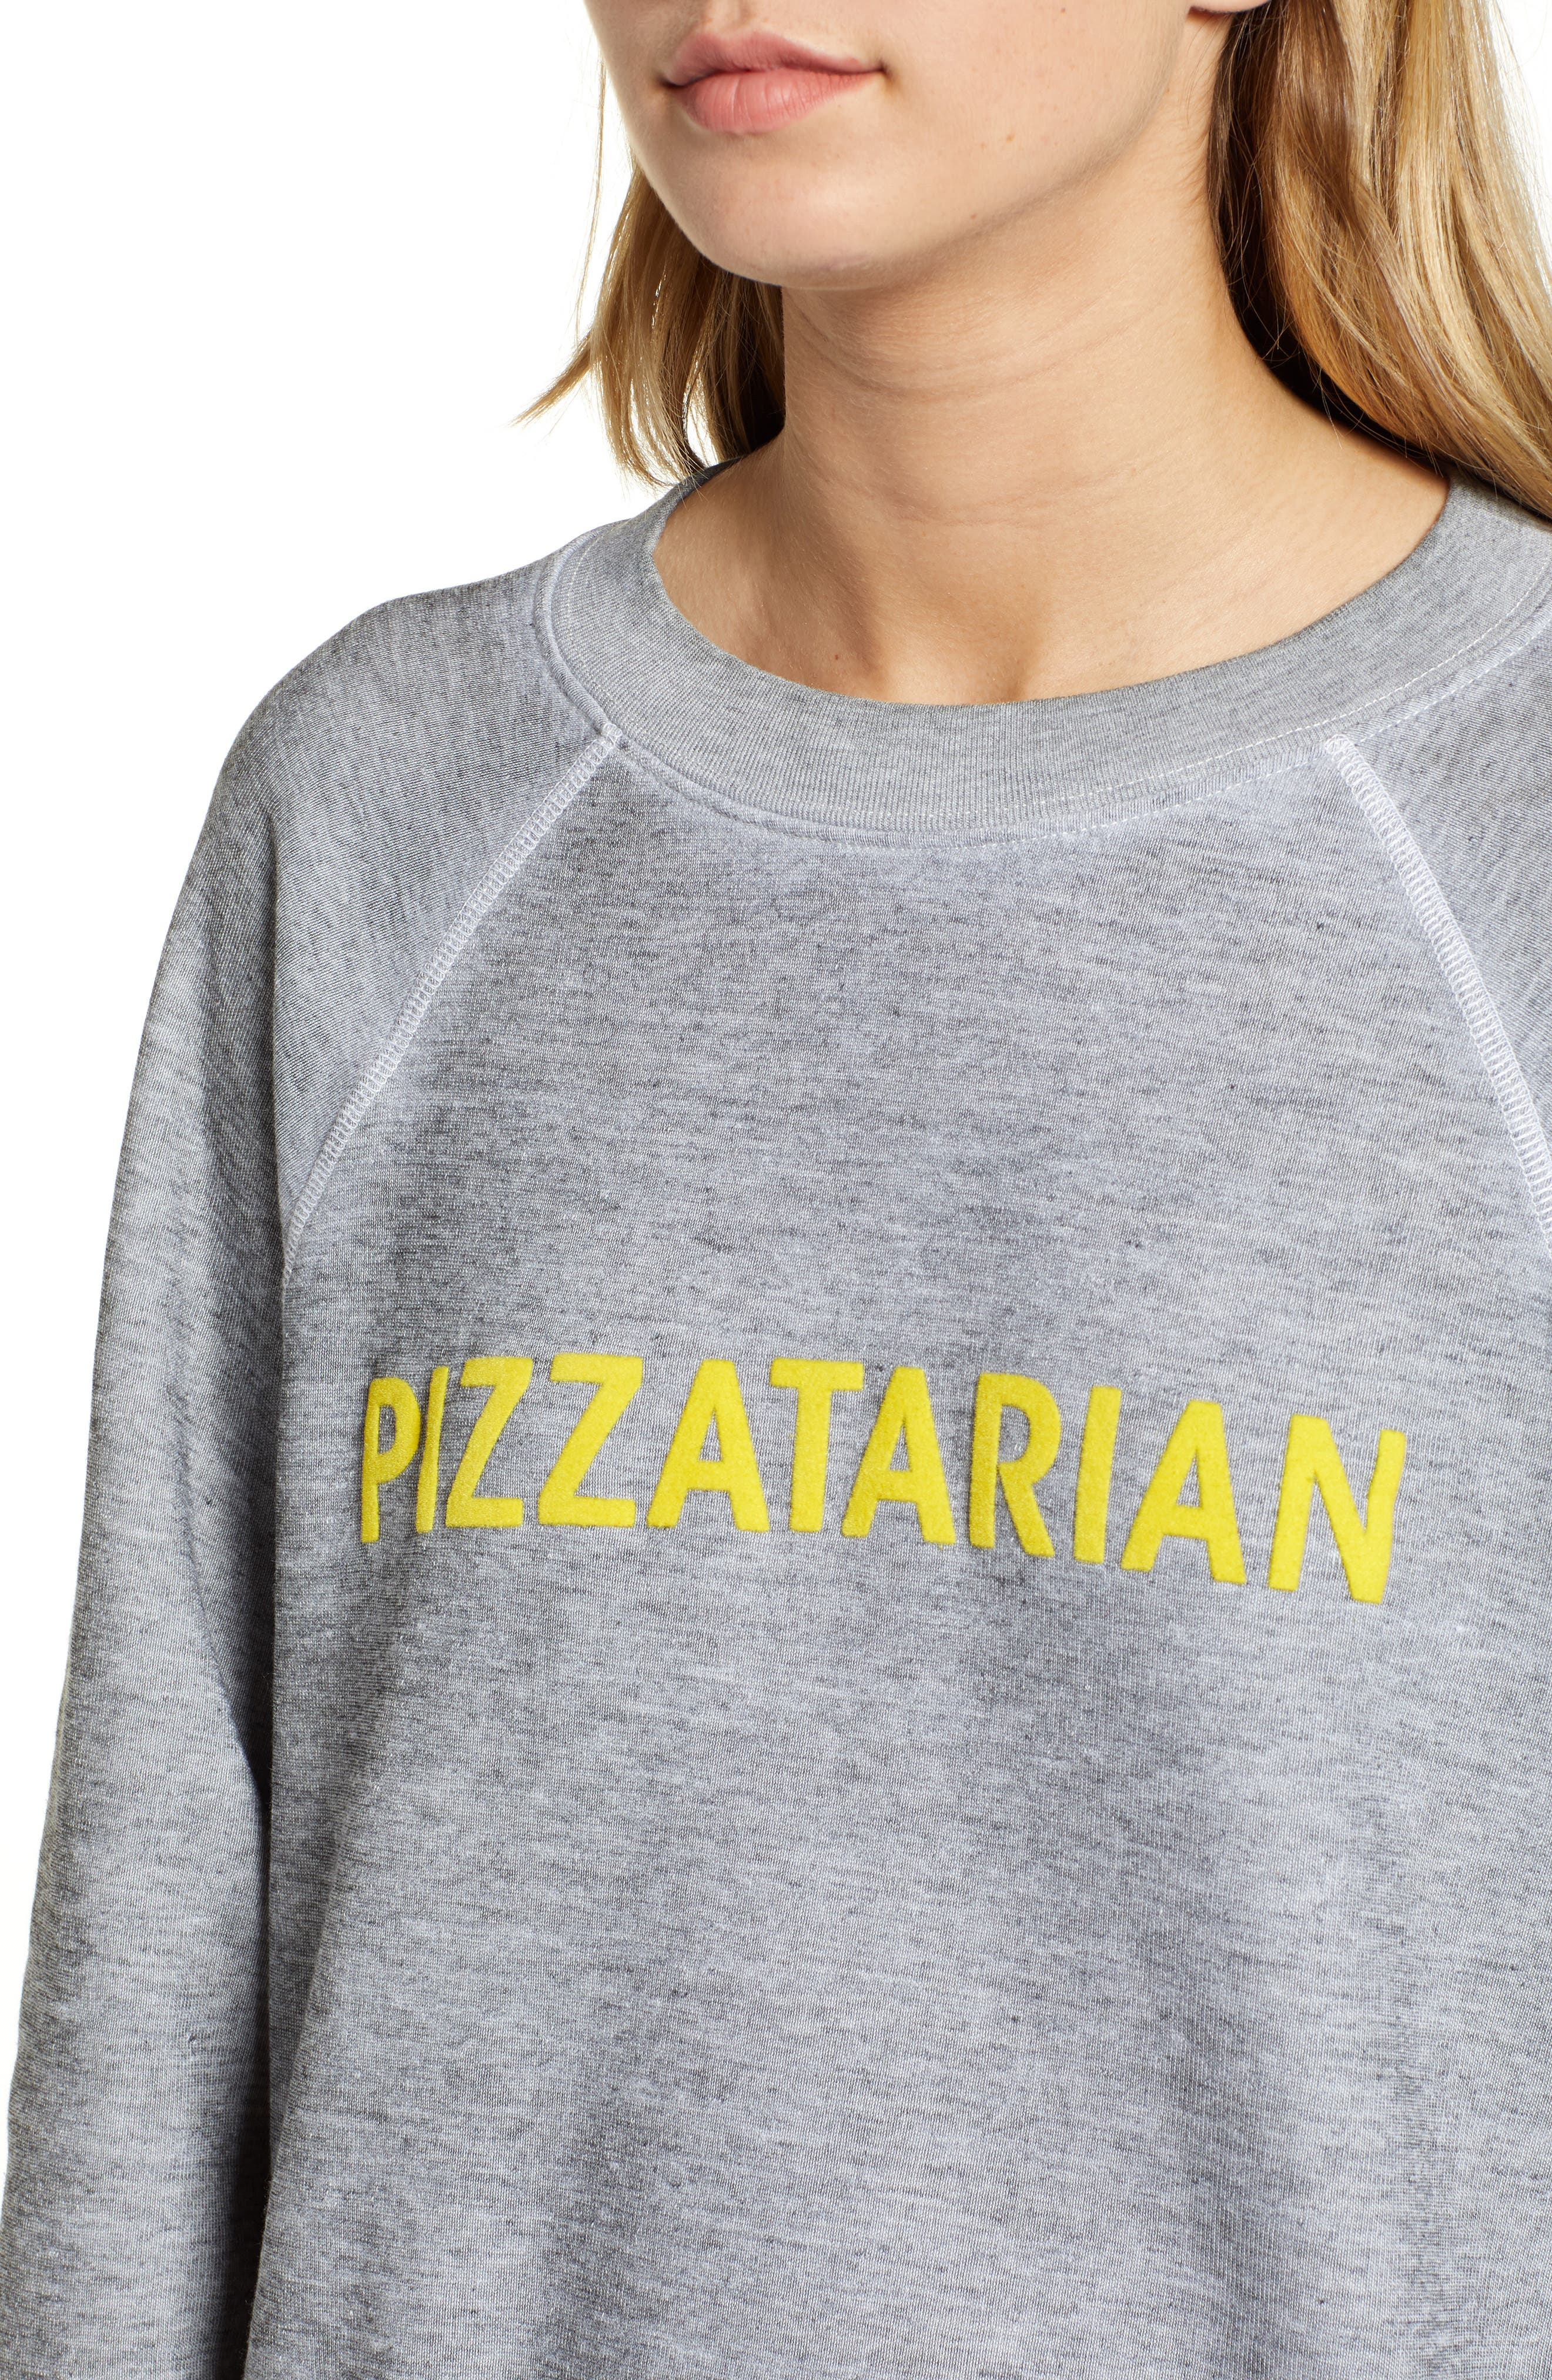 Pizzatarian Sommers Sweatshirt,                             Alternate thumbnail 4, color,                             HEATHER